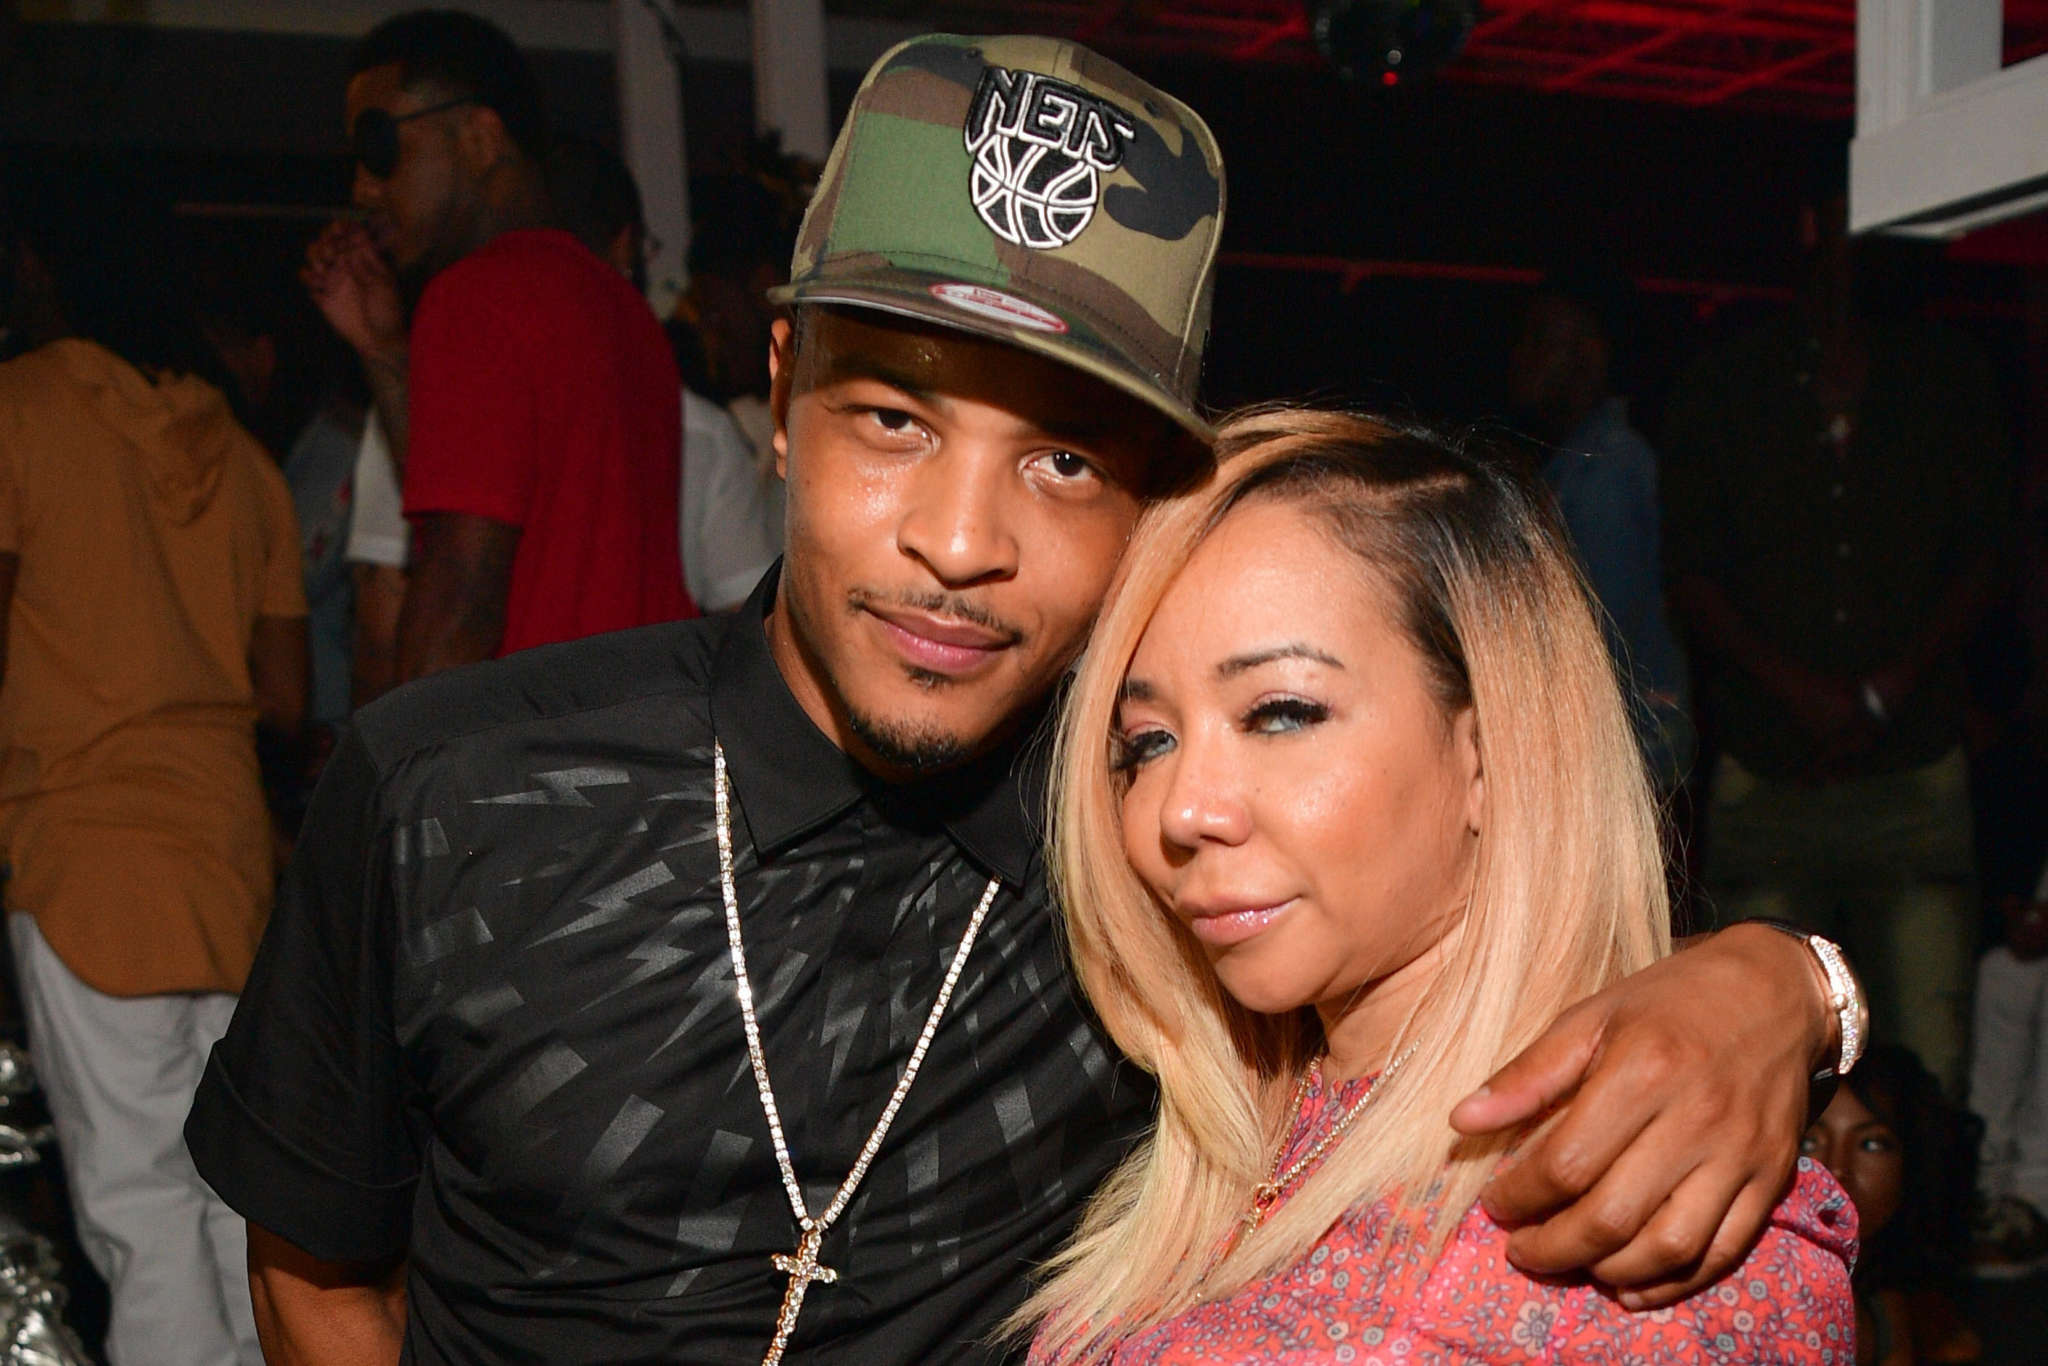 Tiny Harris Confesses She Put Herself 'Out There' While Married To T.I. – Did She Cheat As Well?